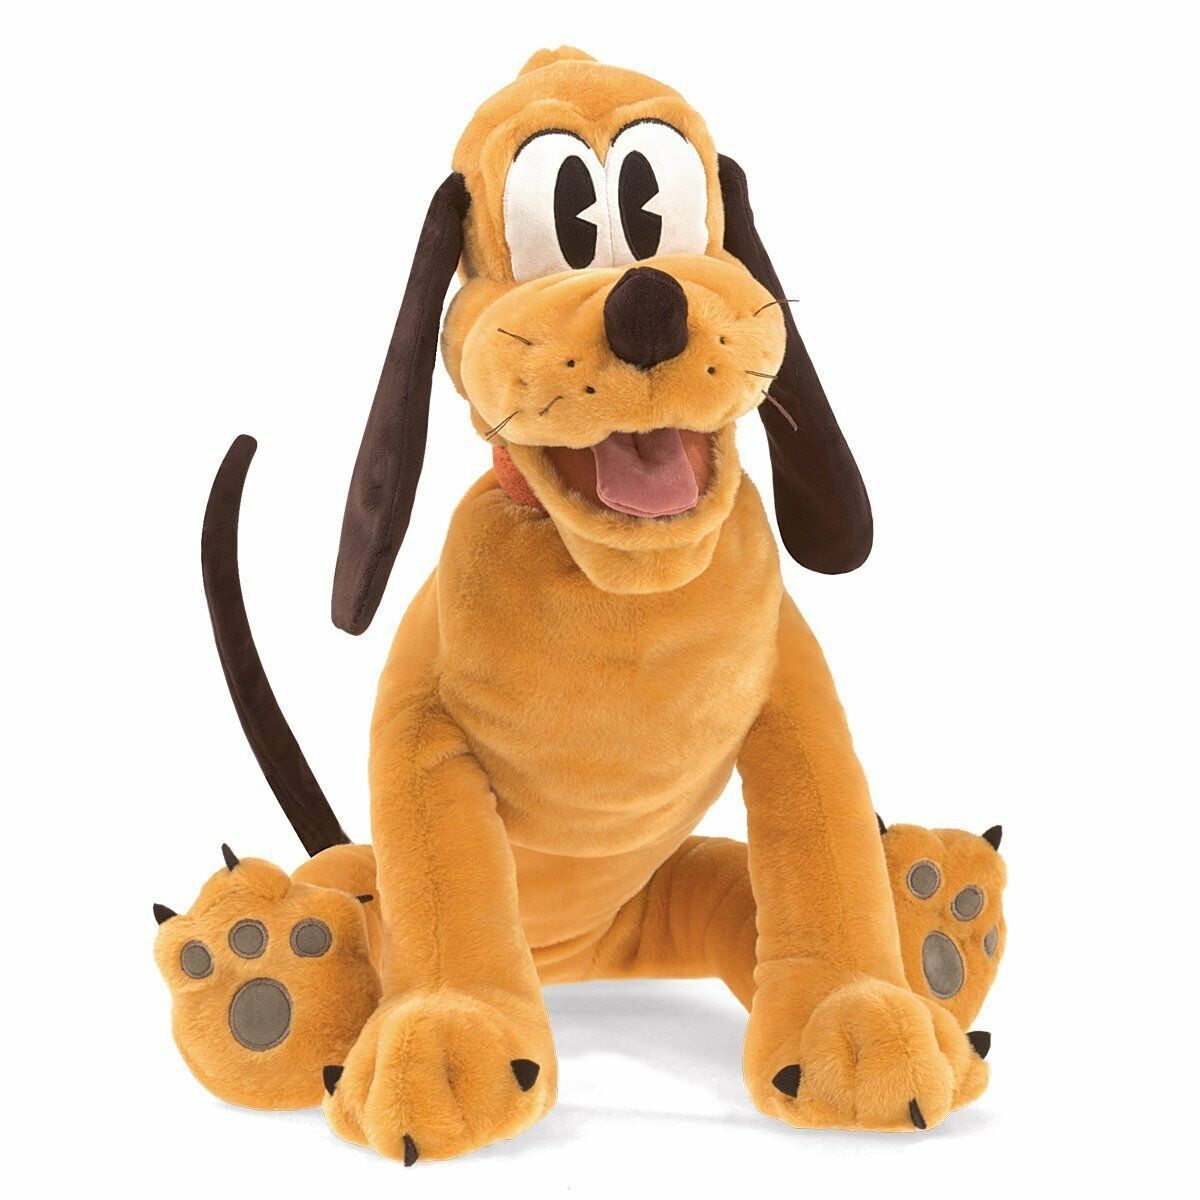 Folkmanis Pluto Character Hand Puppet, 22